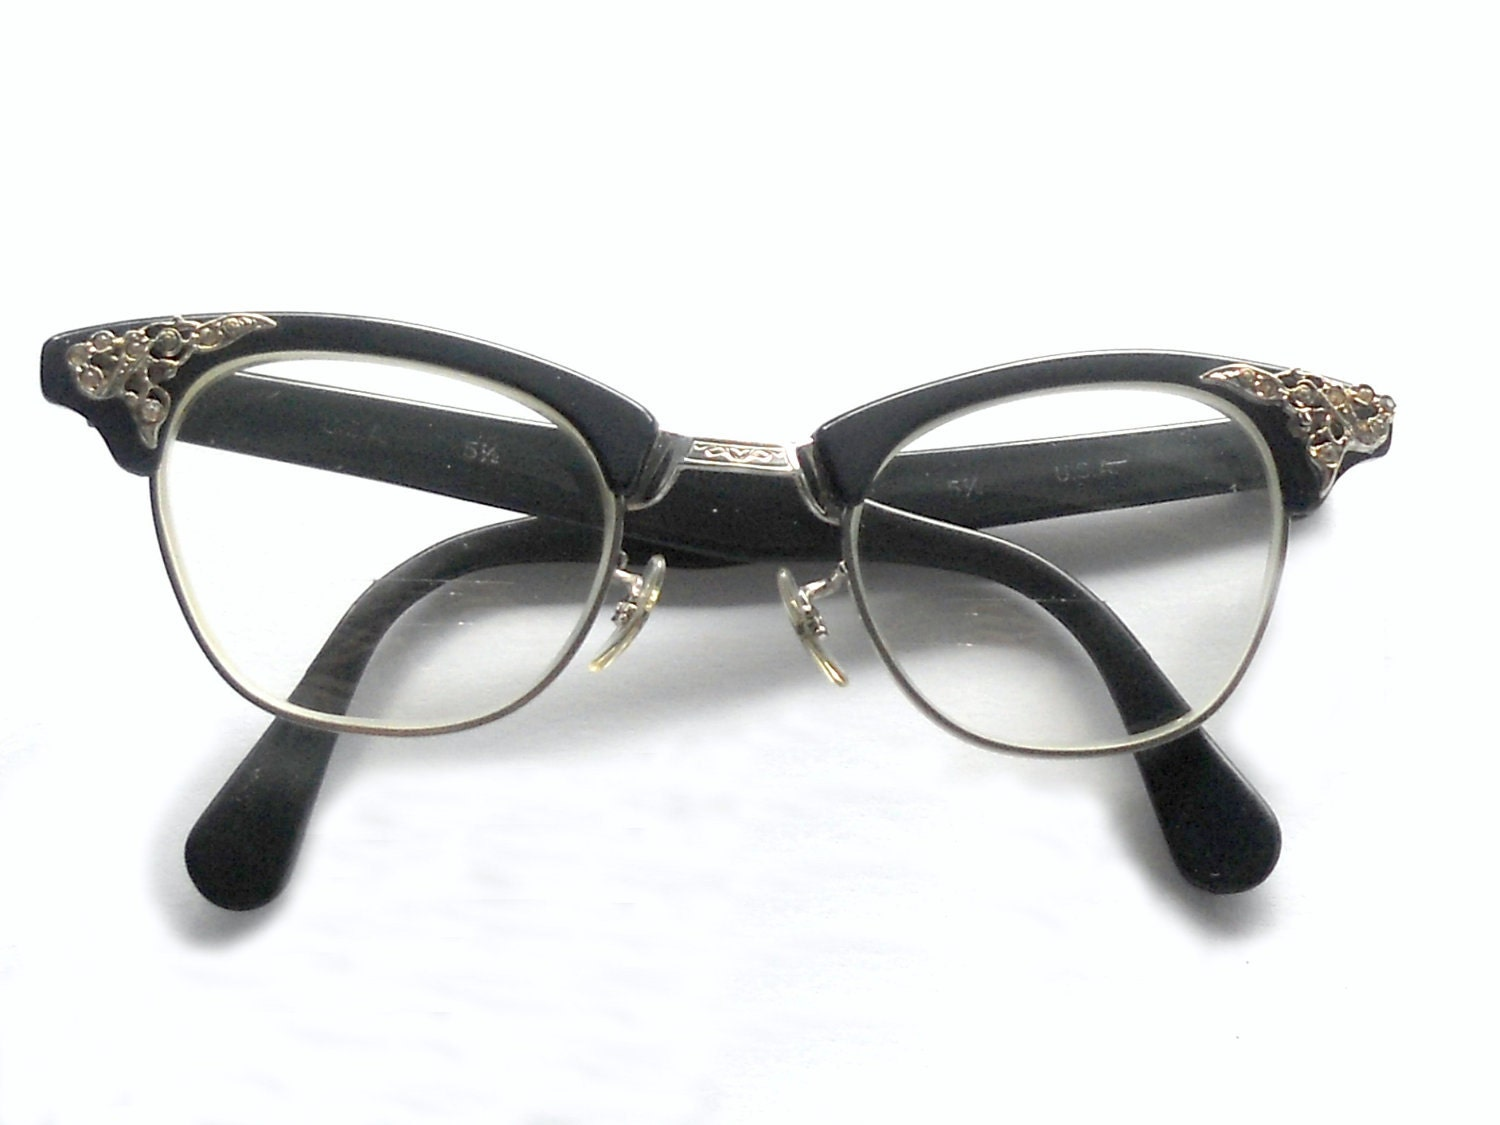 Retro Eyeglass Frames Portland Oregon : Vintage 1950s Eyeglasses Dark Blue and 12 K by ...